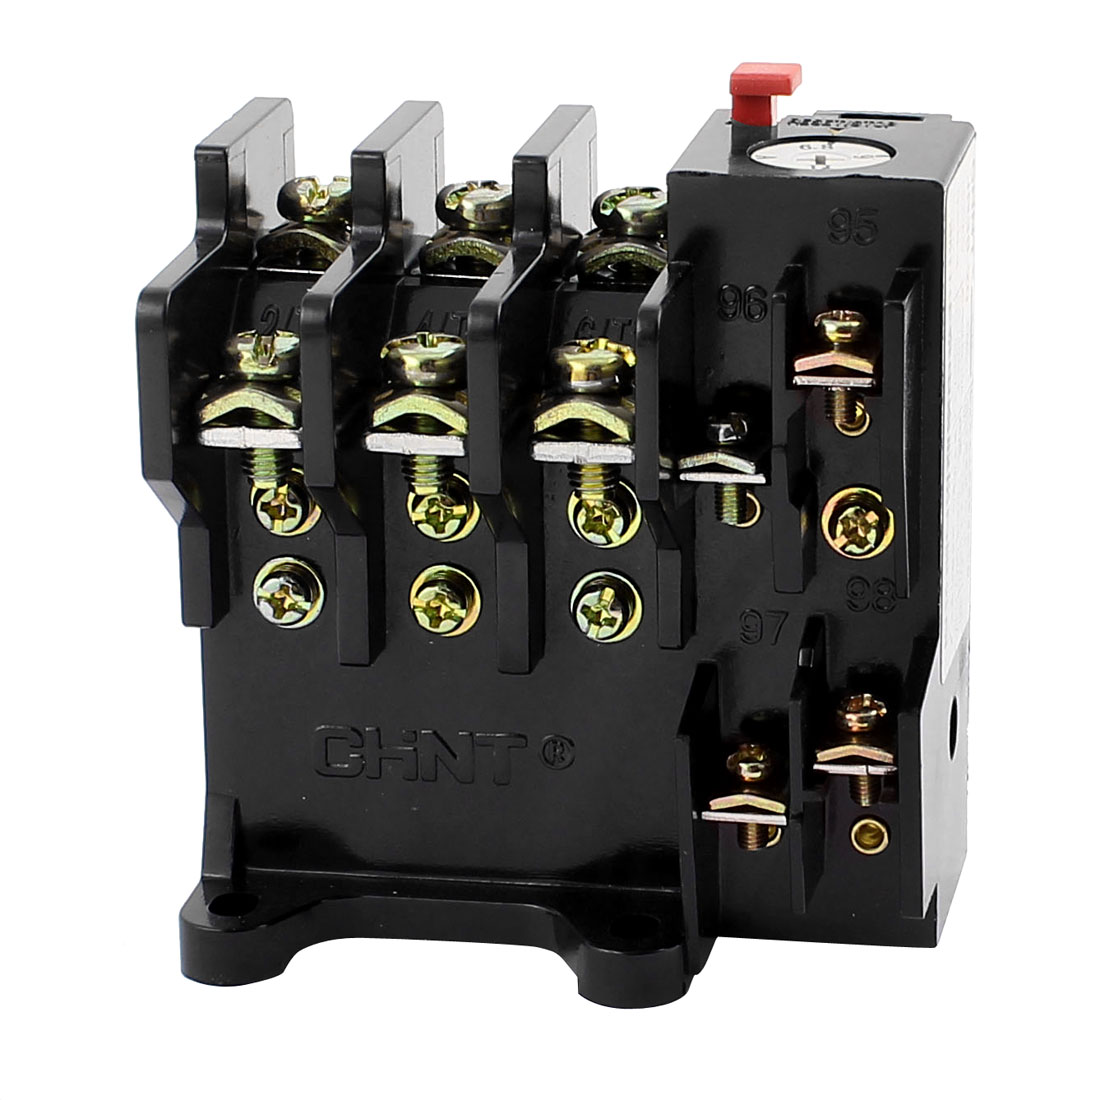 JR36-20 6.8-11A 3 Pole 1 NO 1 NC Motor Protector Electric Thermal Overload Relay